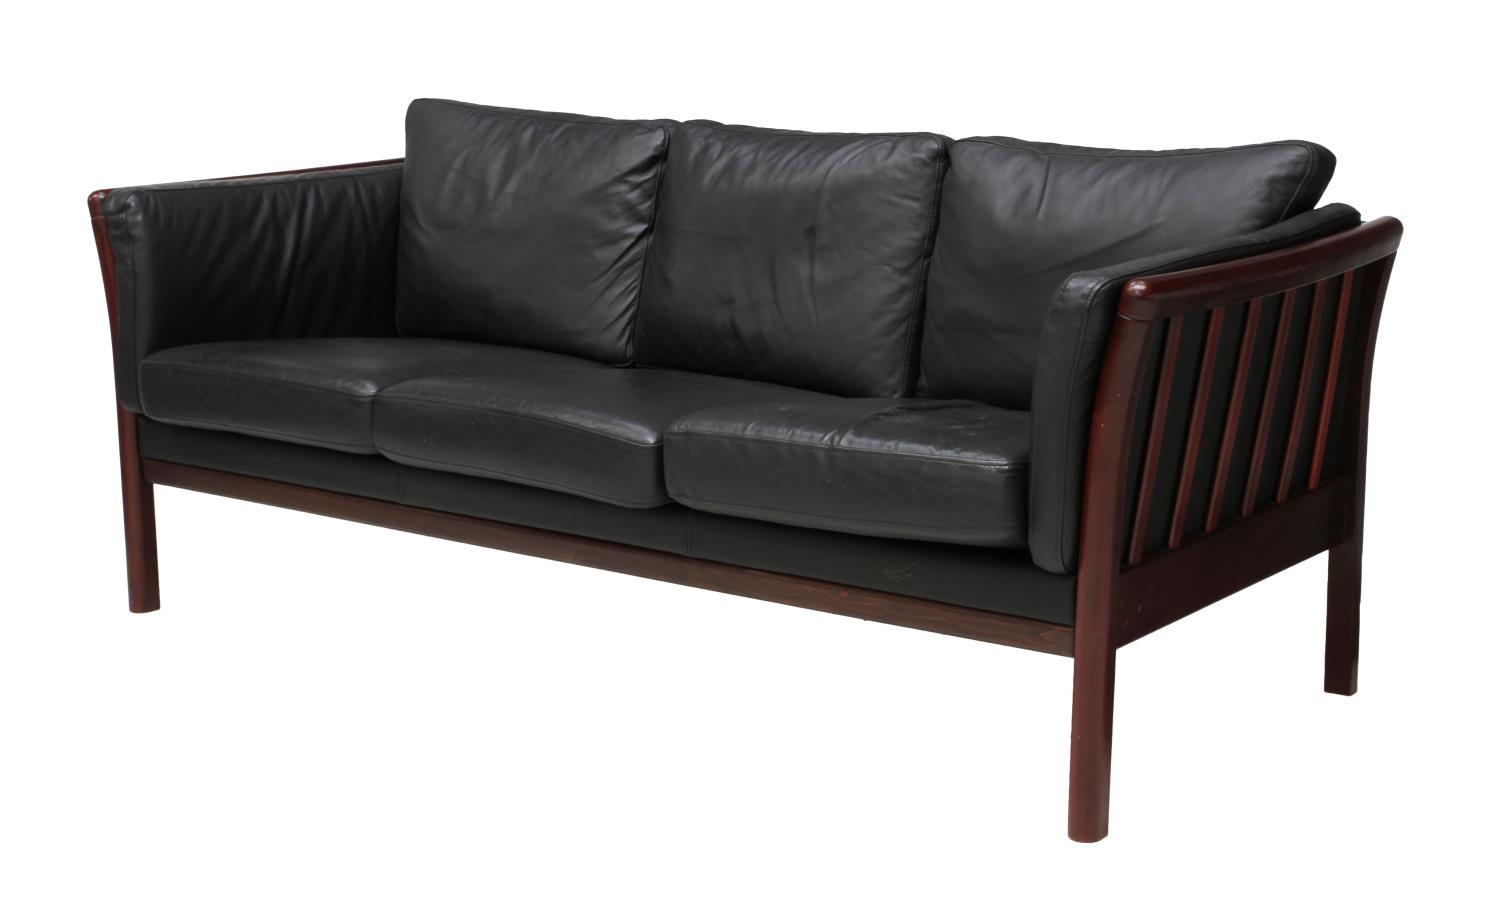 danish mid century modern black leather sofa june mid century design